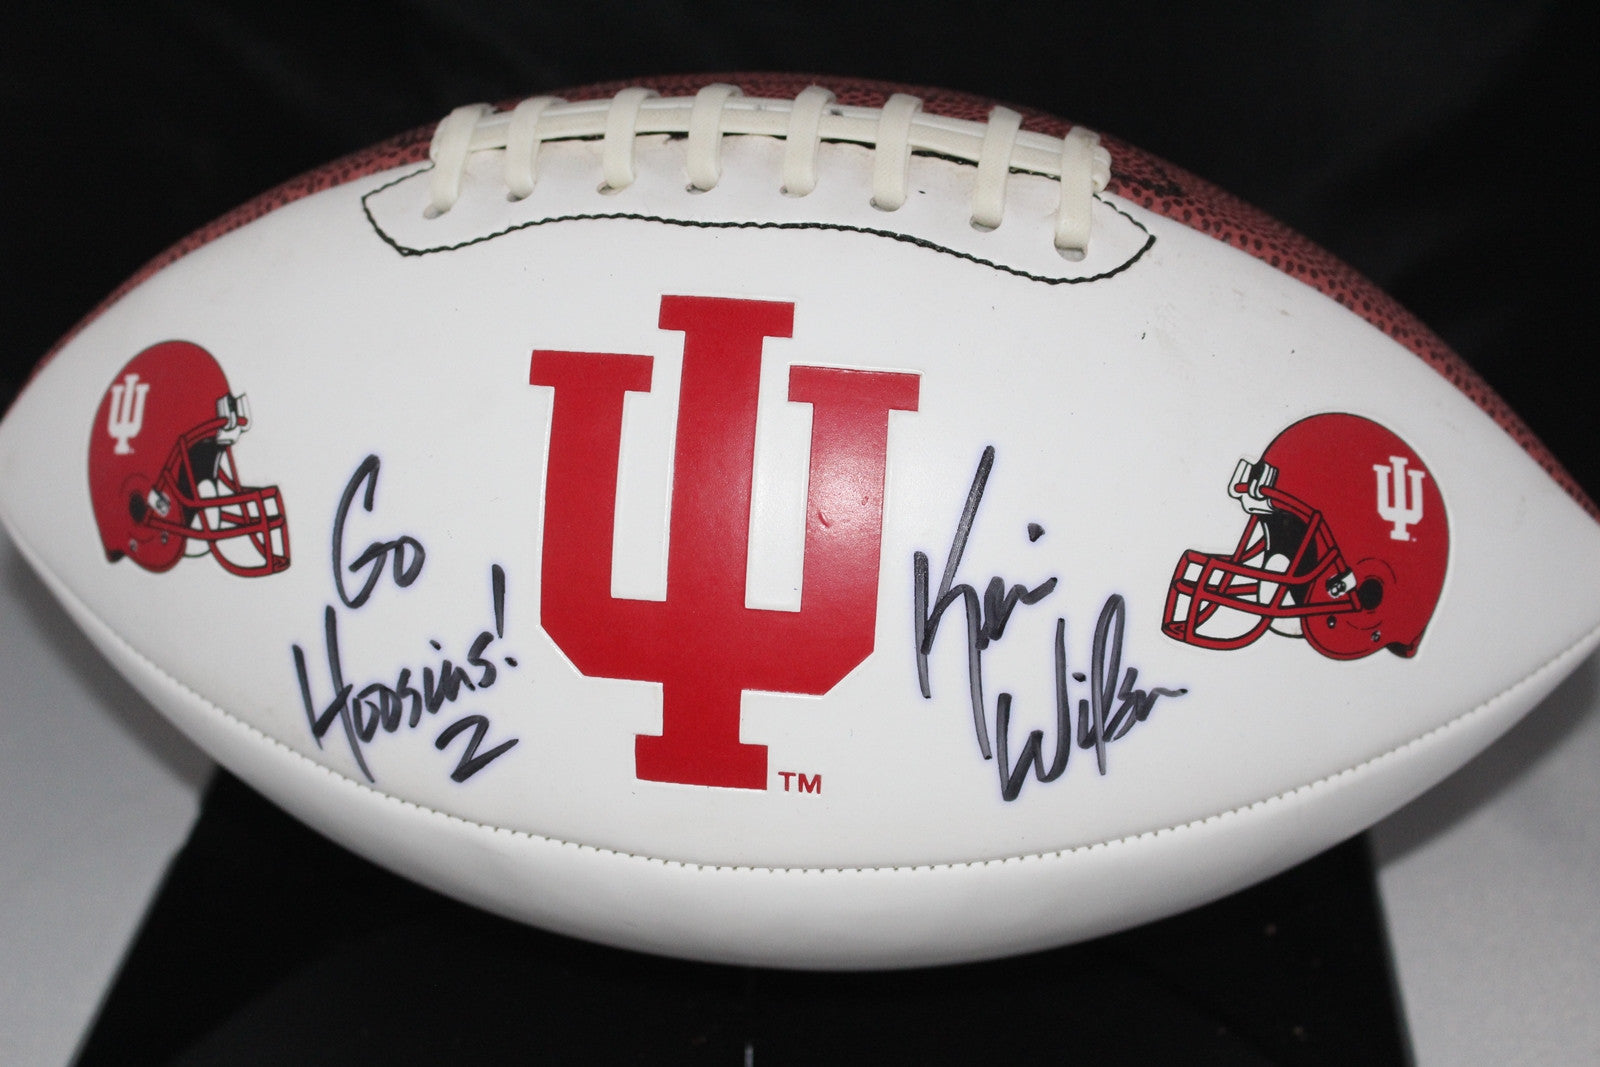 Kevin Wilson Autographed Indiana University Logo Football - Vintage Indy Sports